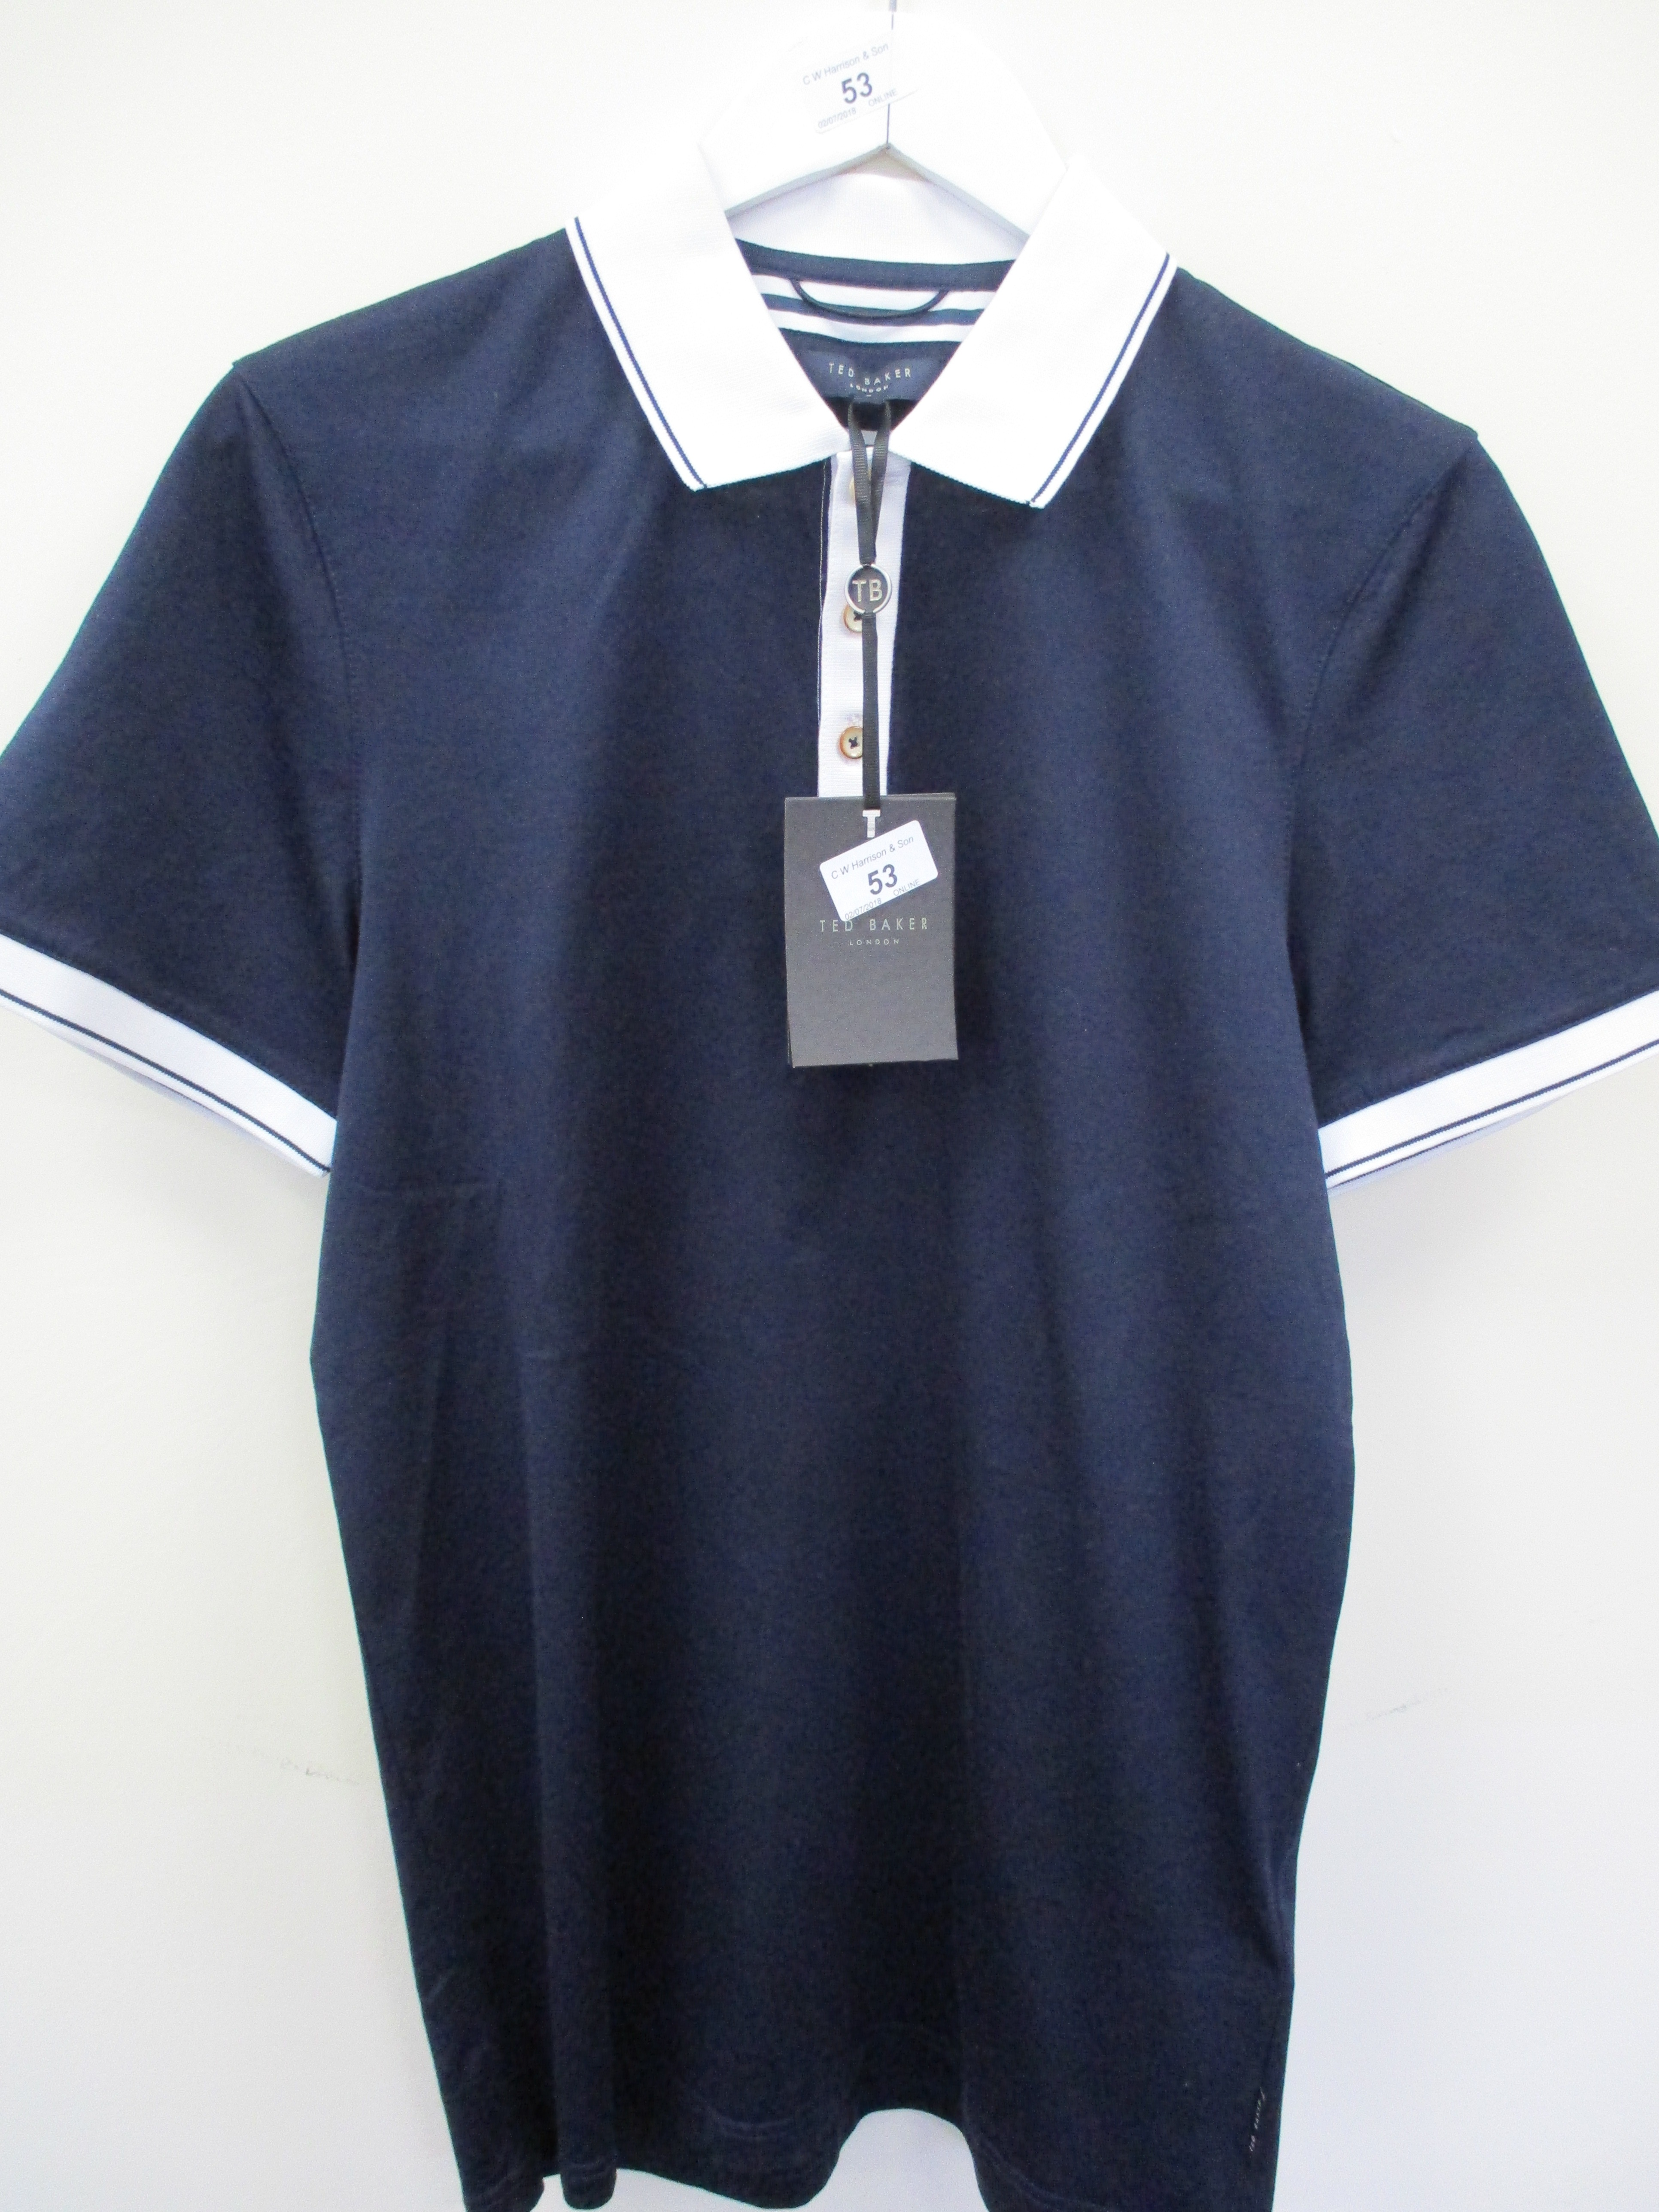 Lot 53 - Ted Baker polo shirt - navy - small RRP £65